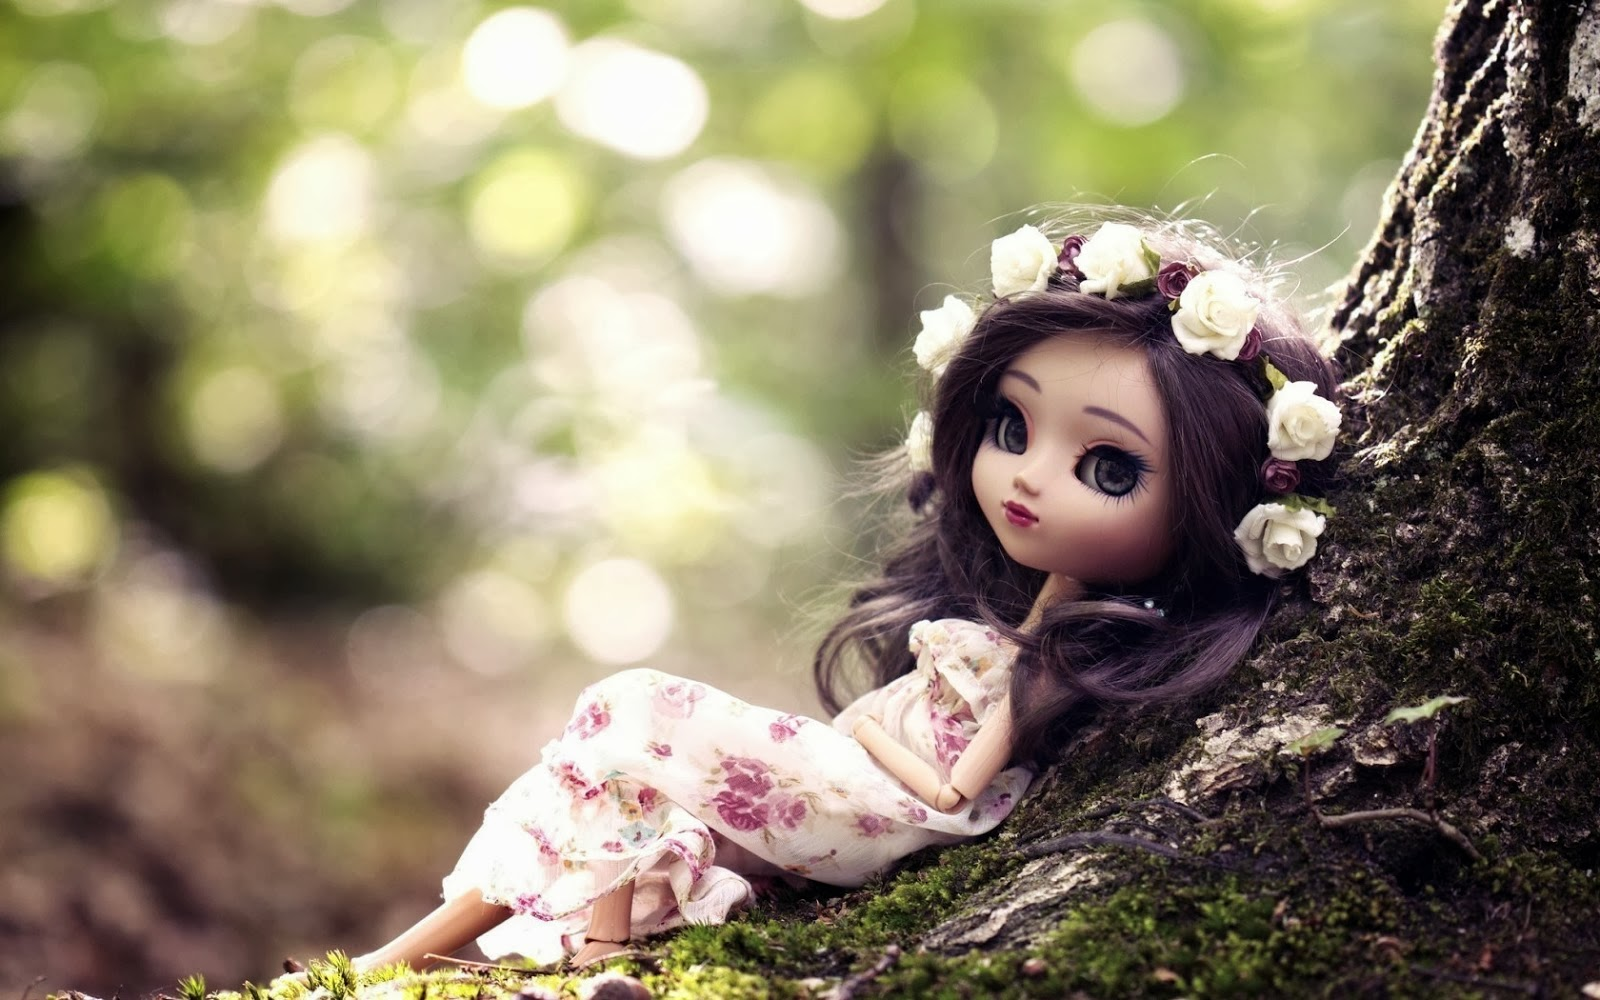 Free download Very Cute Wallpapers For Facebook Cute ...